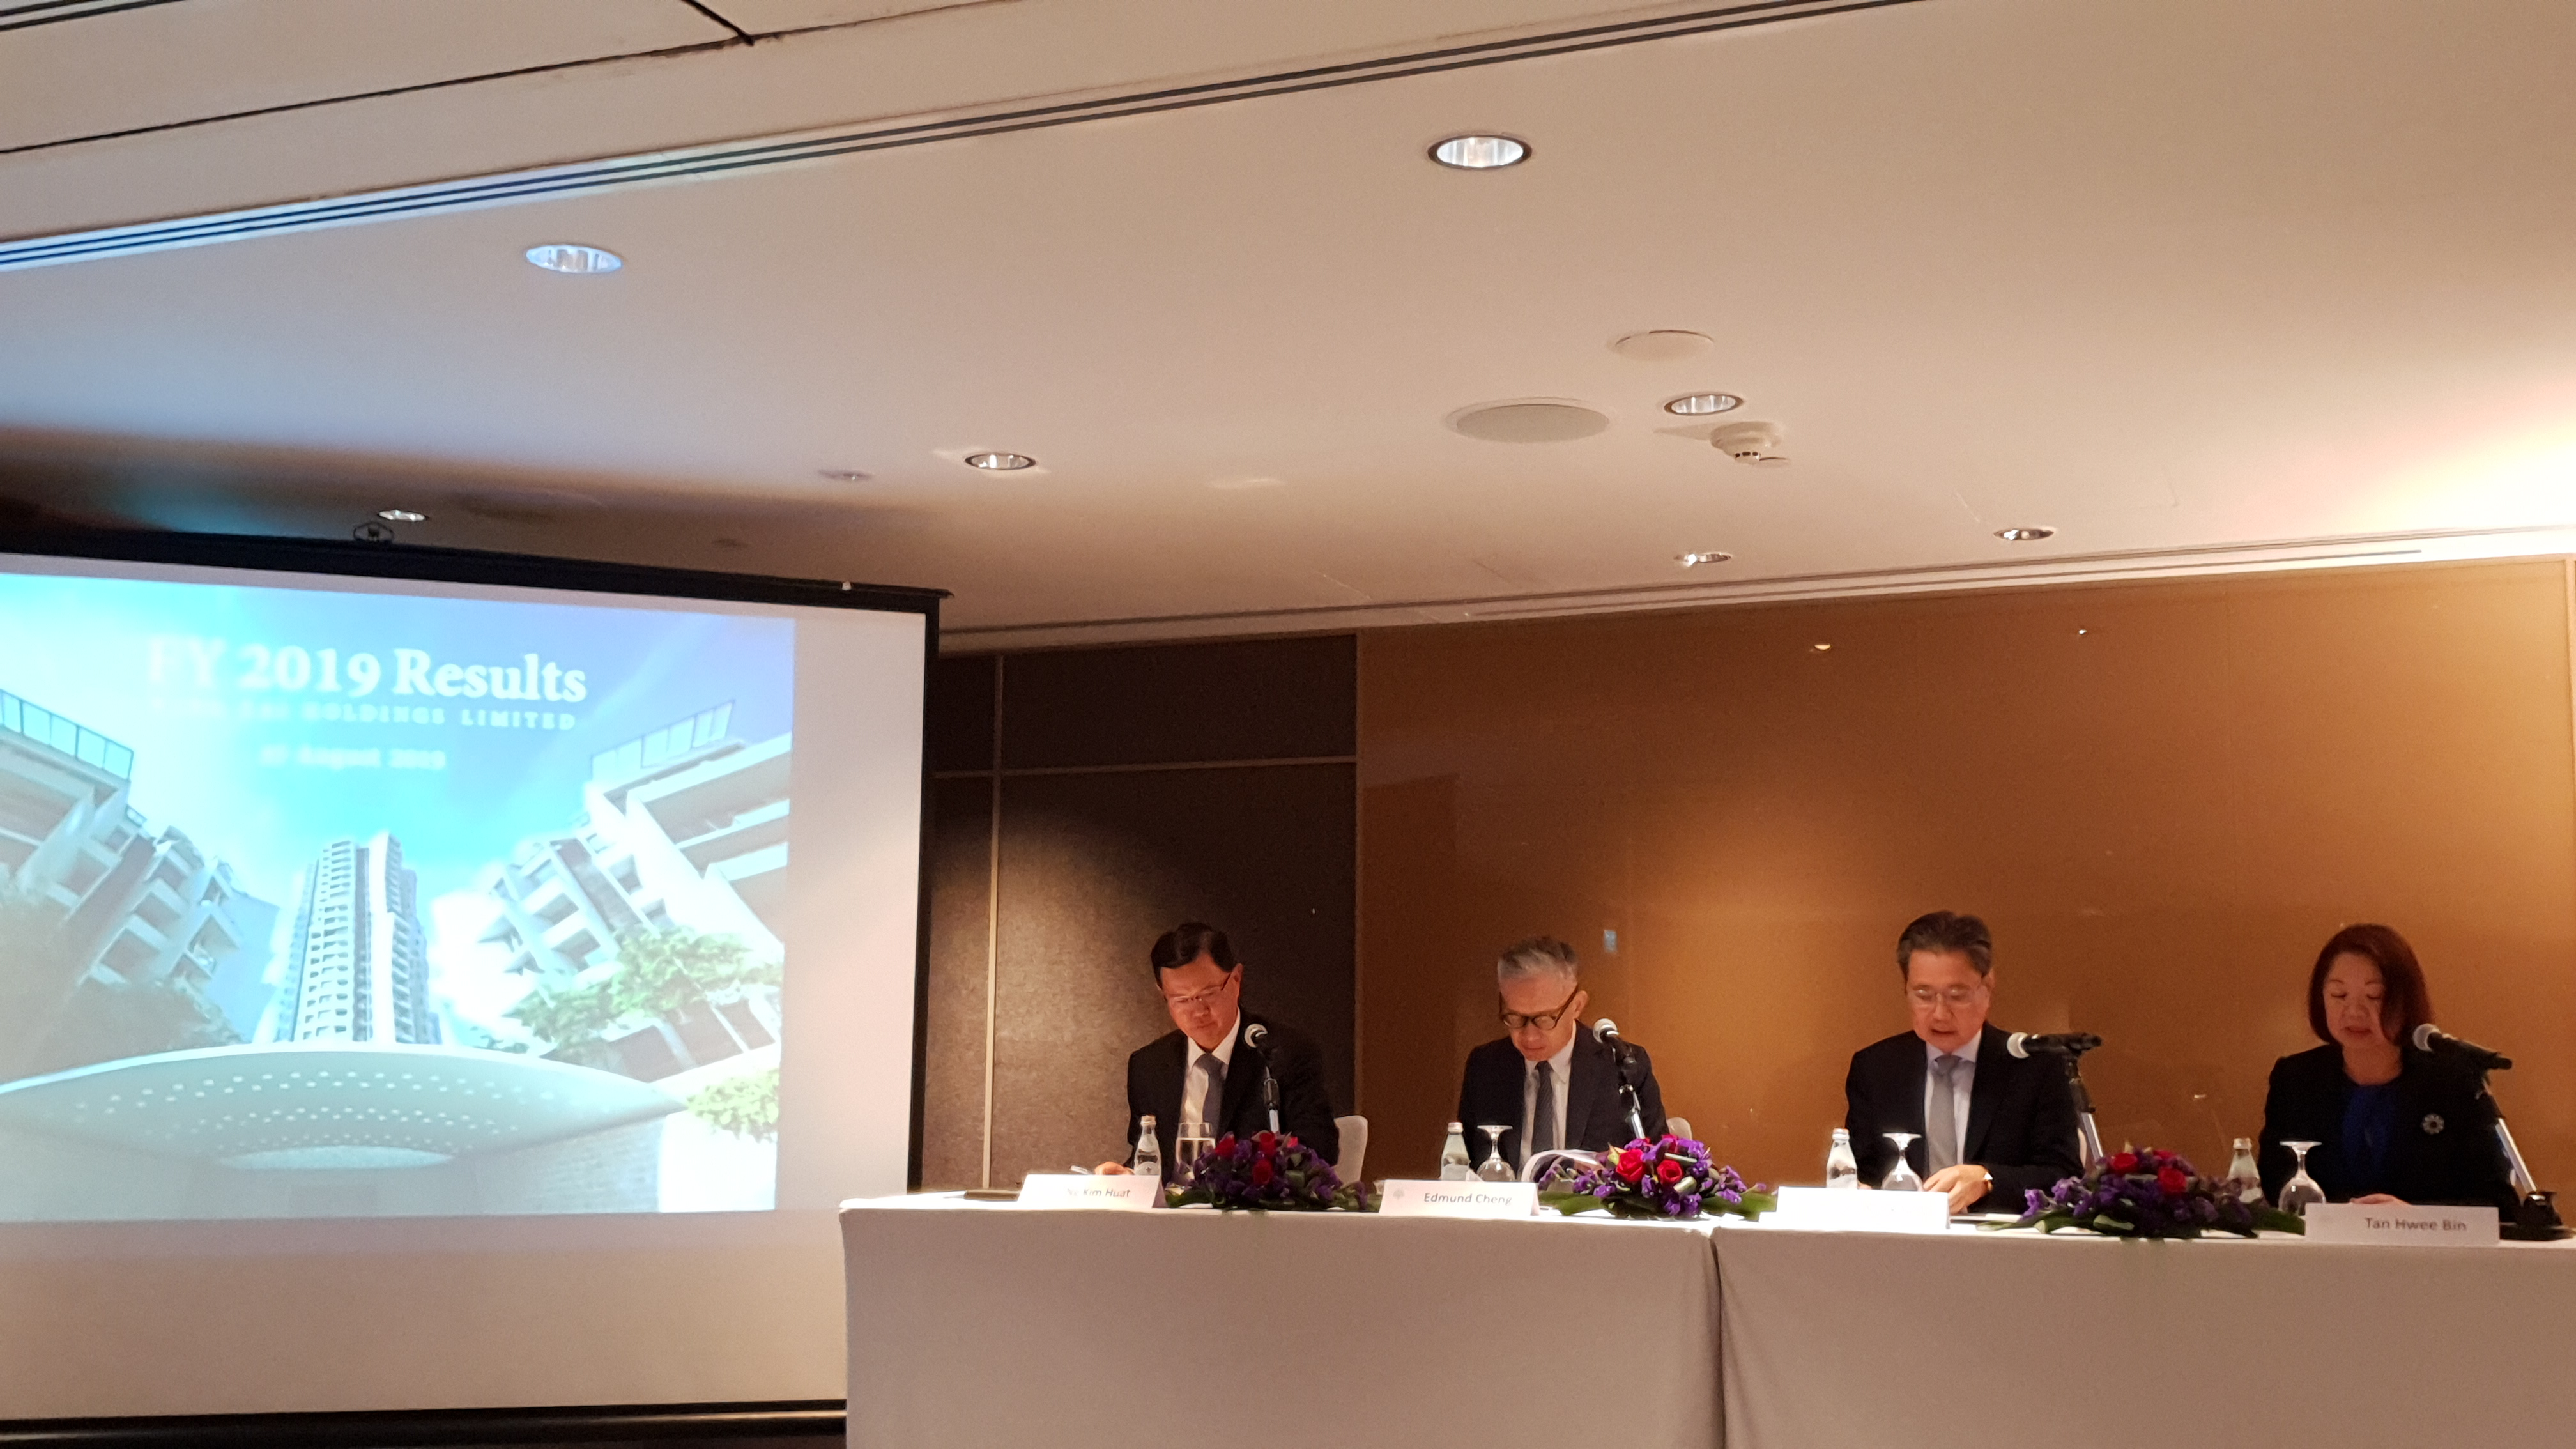 WING TAI HOLDINGS - From left: Ng Kim Huat, group chief financial officer; Edmund Cheng, deputy chairman; Cheng Wai Keung, chairman; Tan Hwee Bin, executive director (Picture: EdgeProp Singapore) - EDGEPROP SINGAPORE